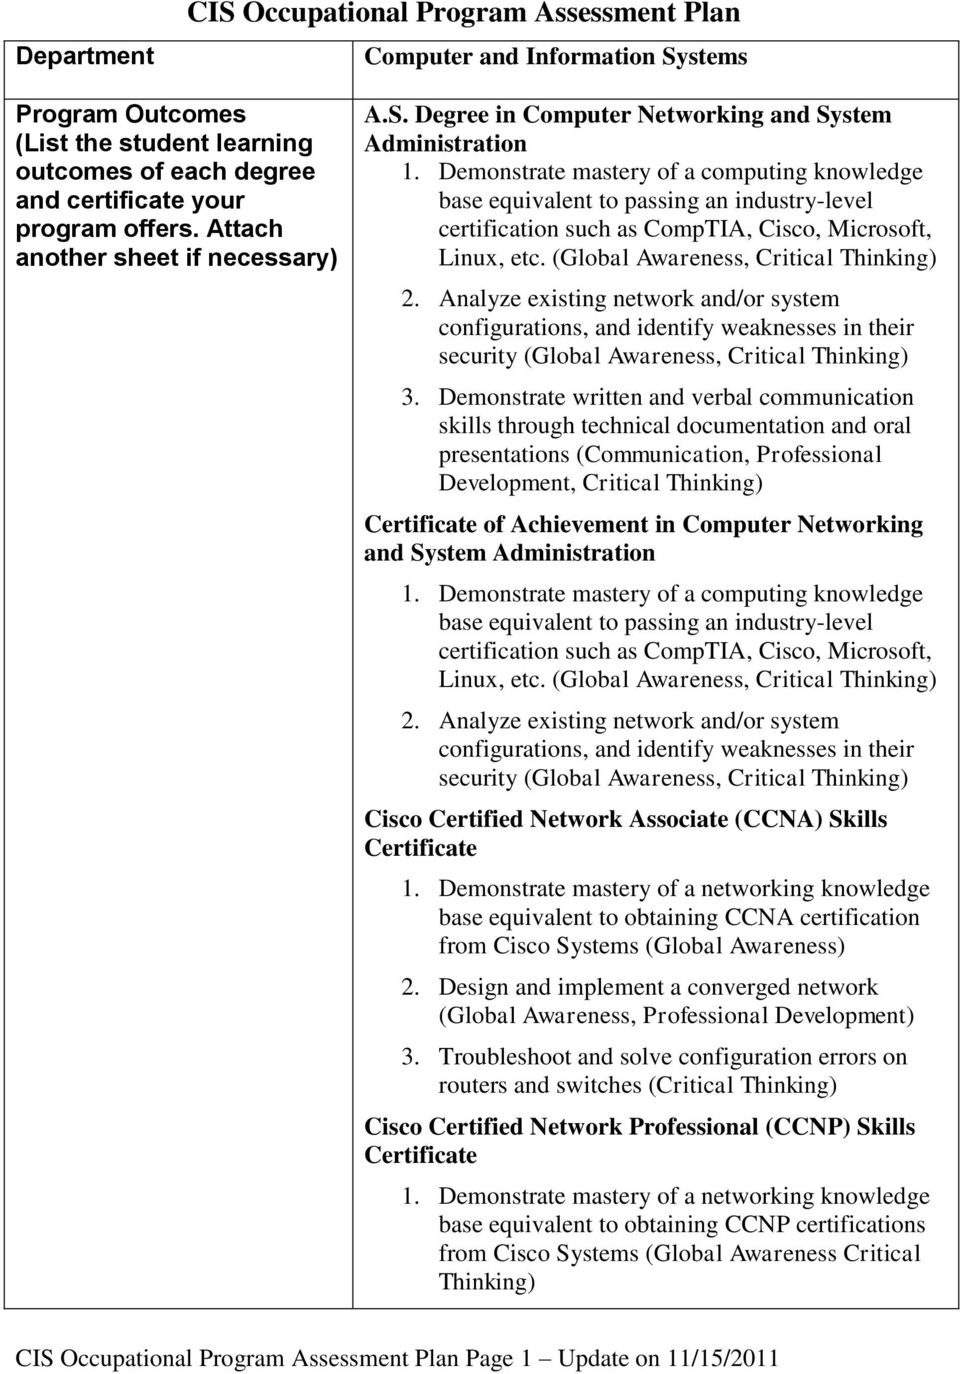 Degree in Computer Networking and System Administration base equivalent to passing an industry-level certification such as CompTIA, Cisco, Microsoft, Linux, etc.